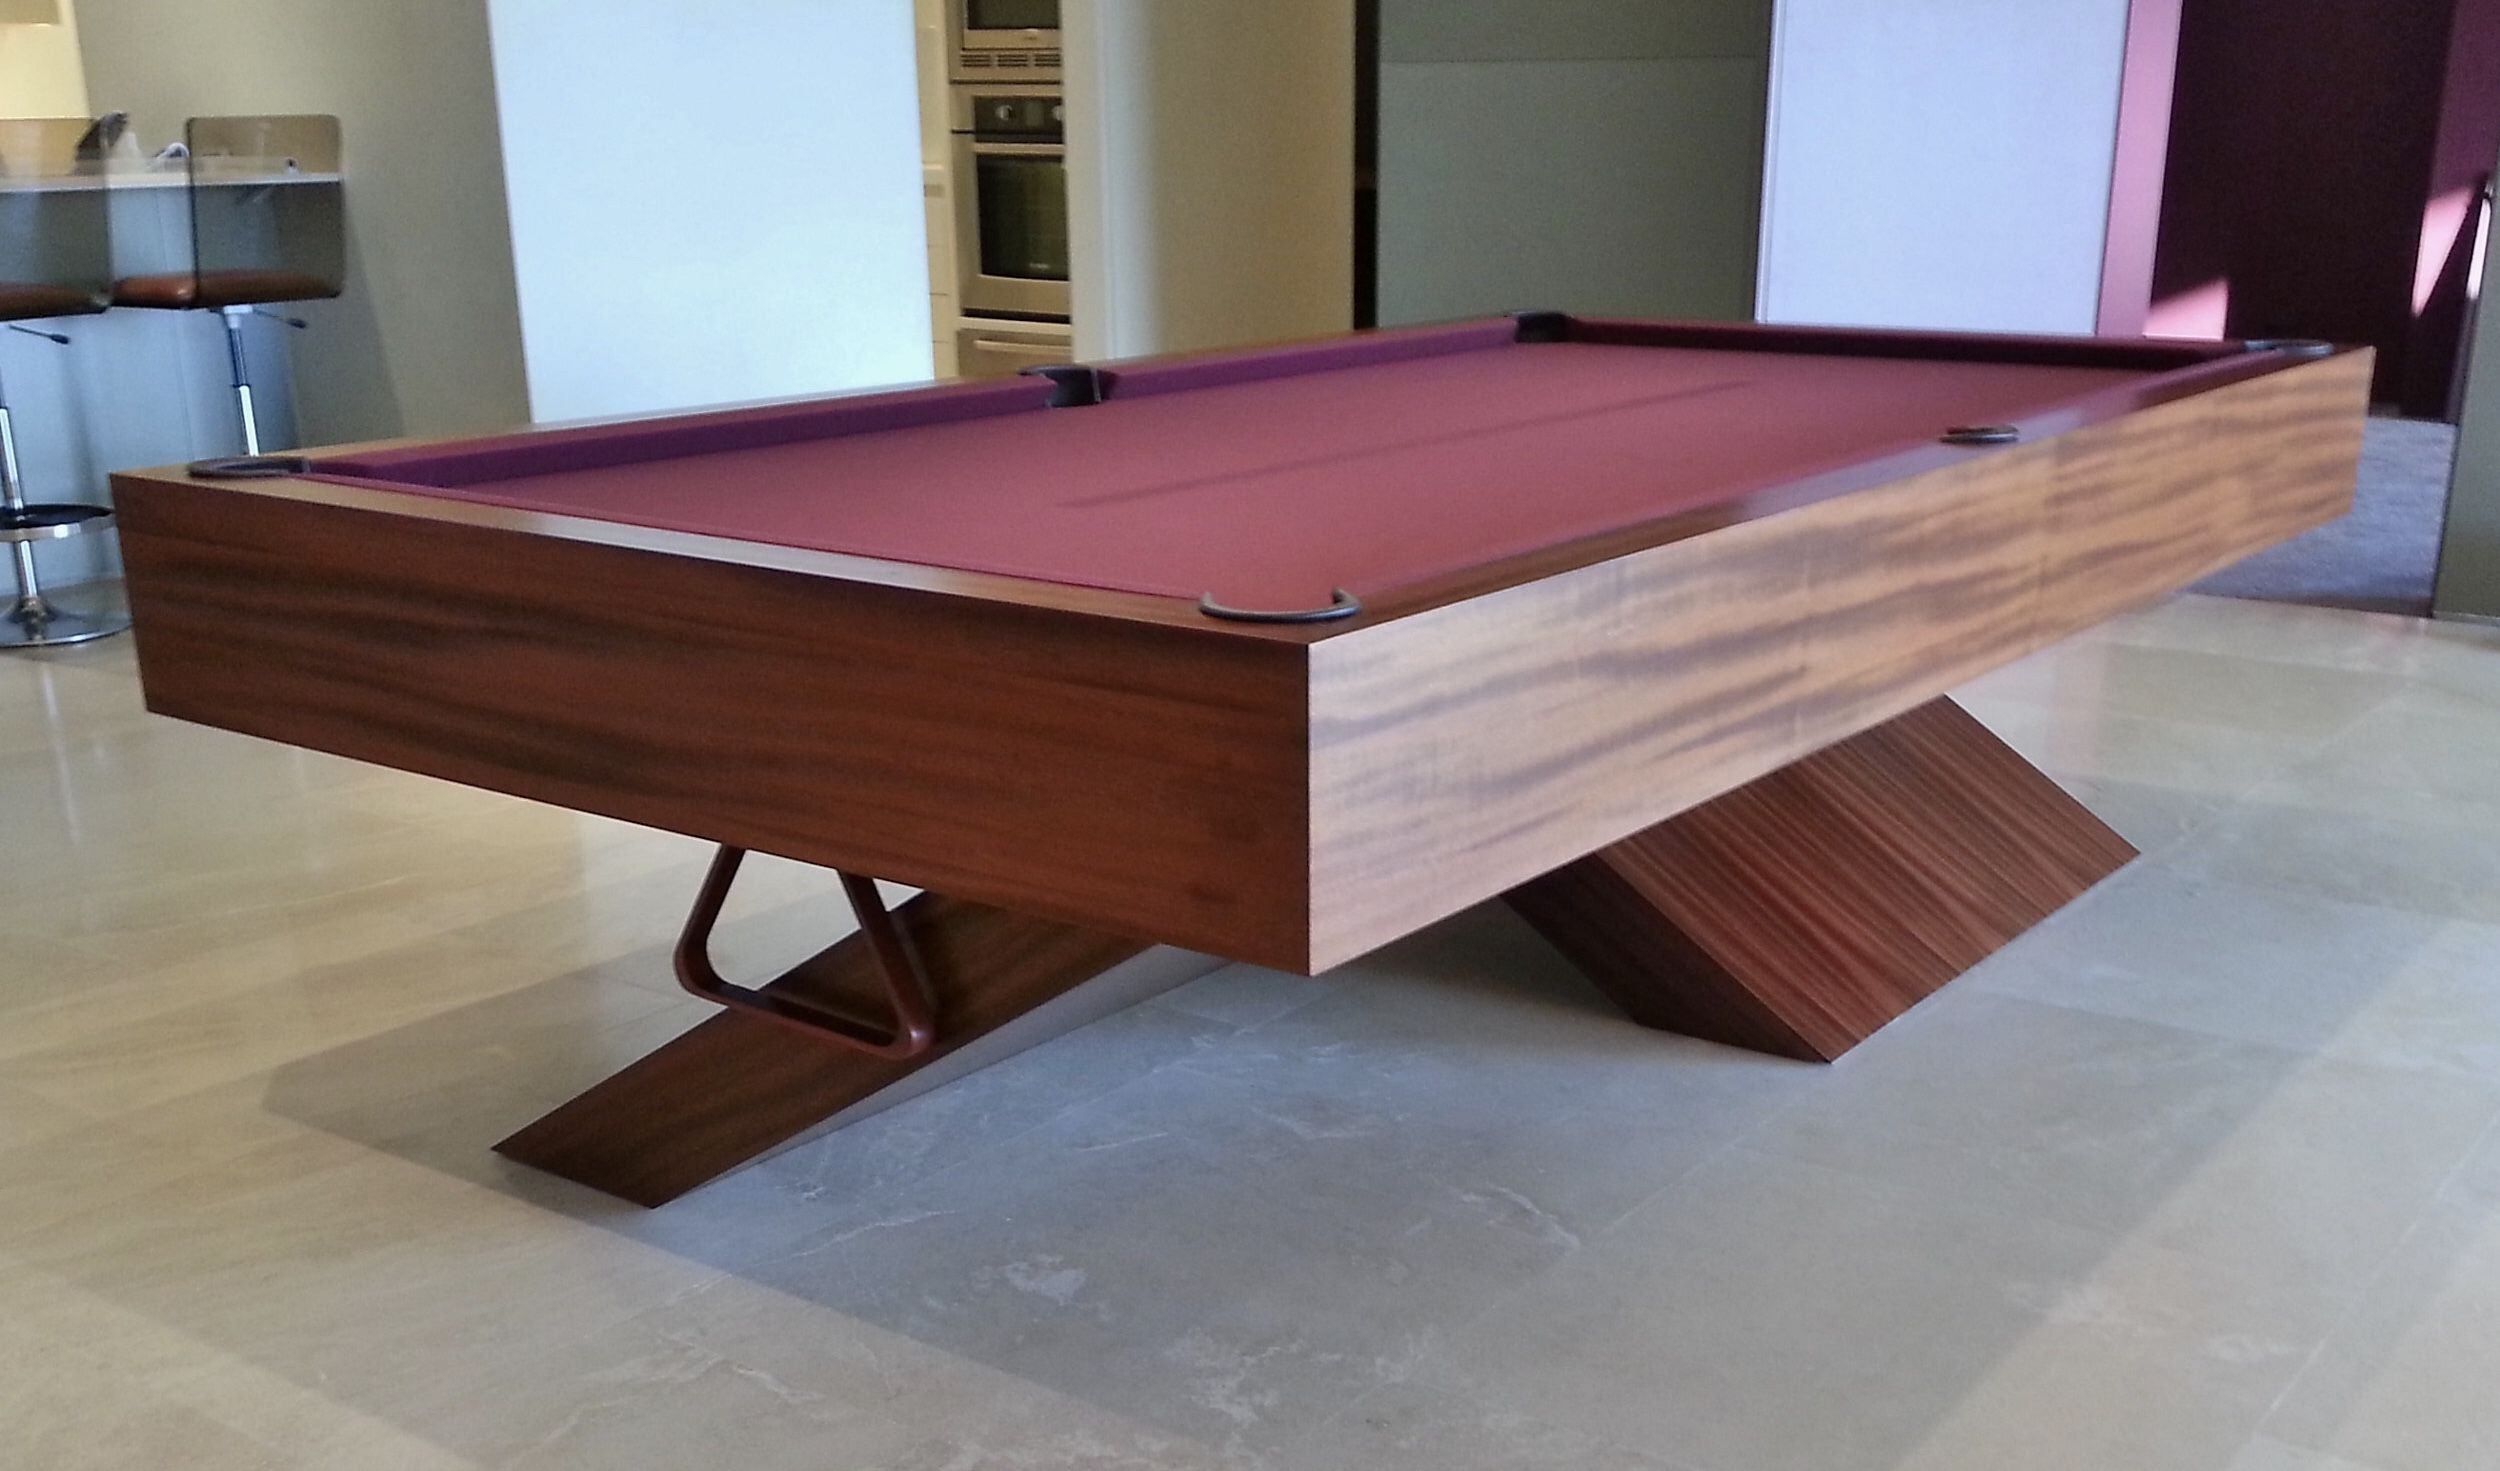 Pin by BF on Father's Day Sale! Pool table, Table